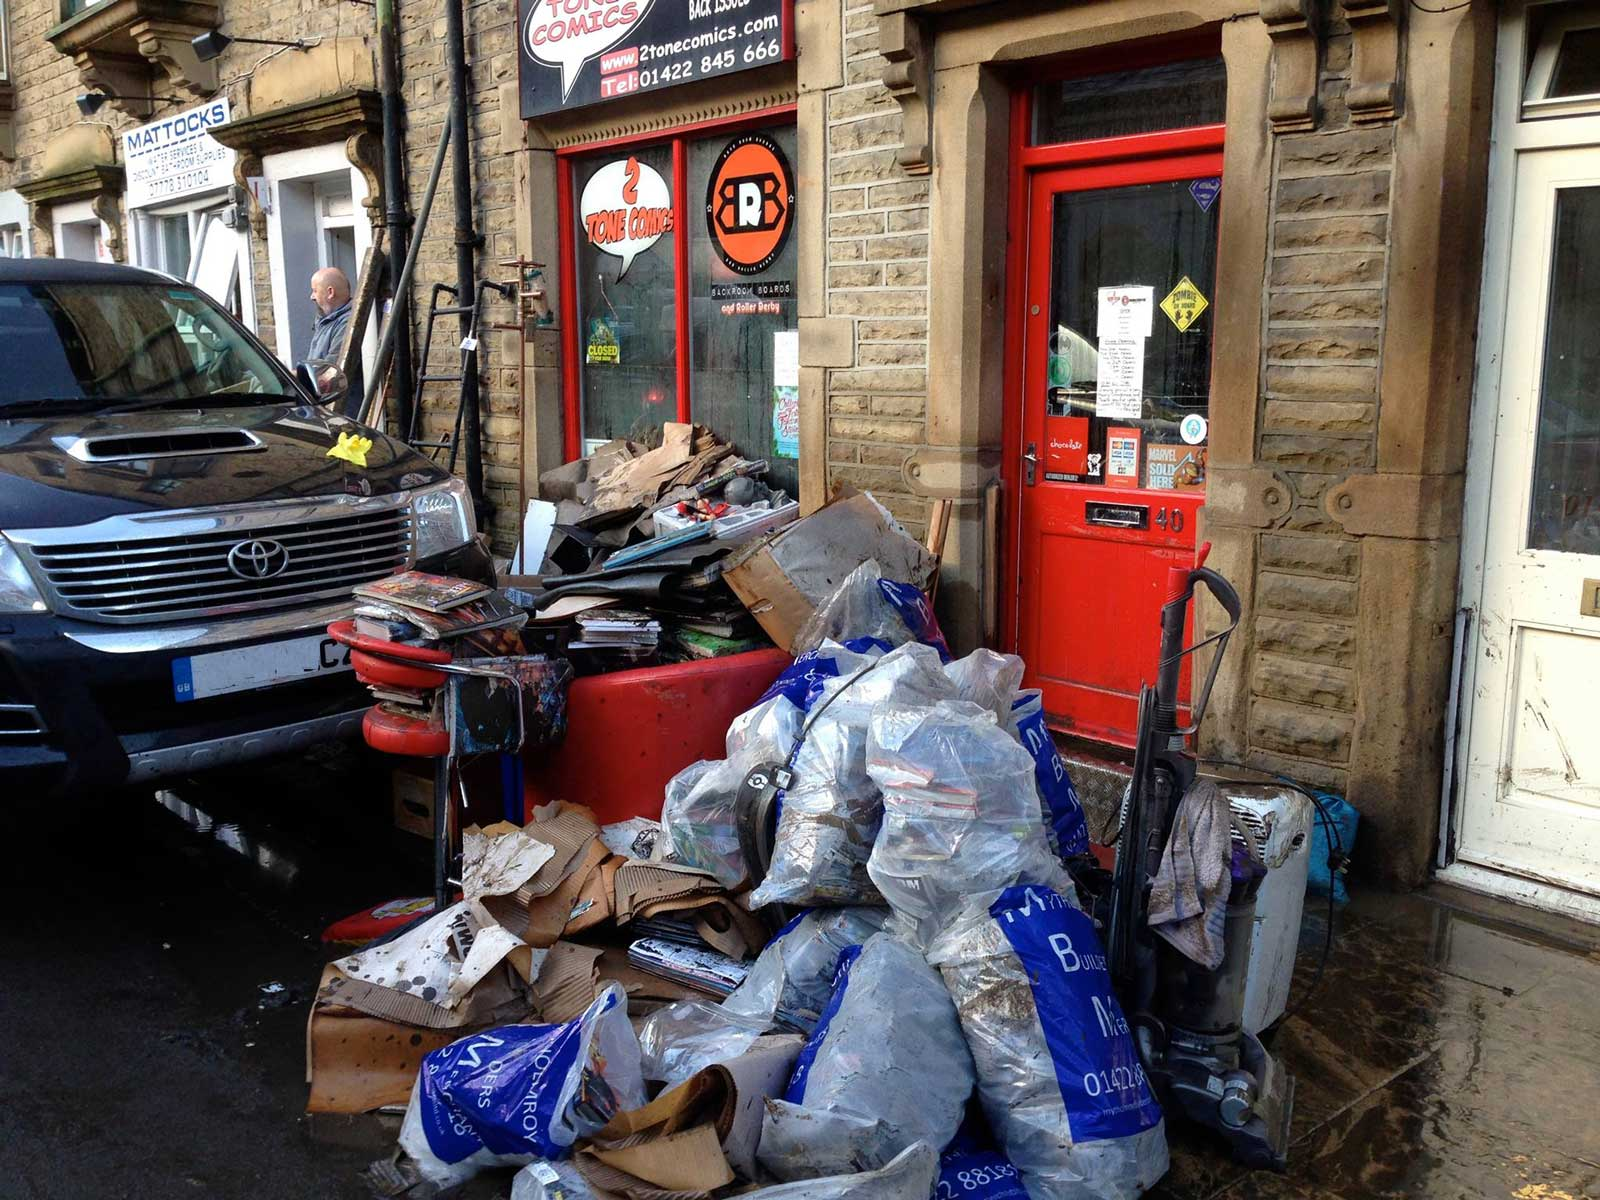 After the storm: clean up work begins at 2 Tone Comics, Hebden Bride. Fand and friends of the independent comic shop have rallied to help raise funds to get the owners, who were unable to insure the shop after previous flooding, back on its feet. Photo: 2 Tone Comics